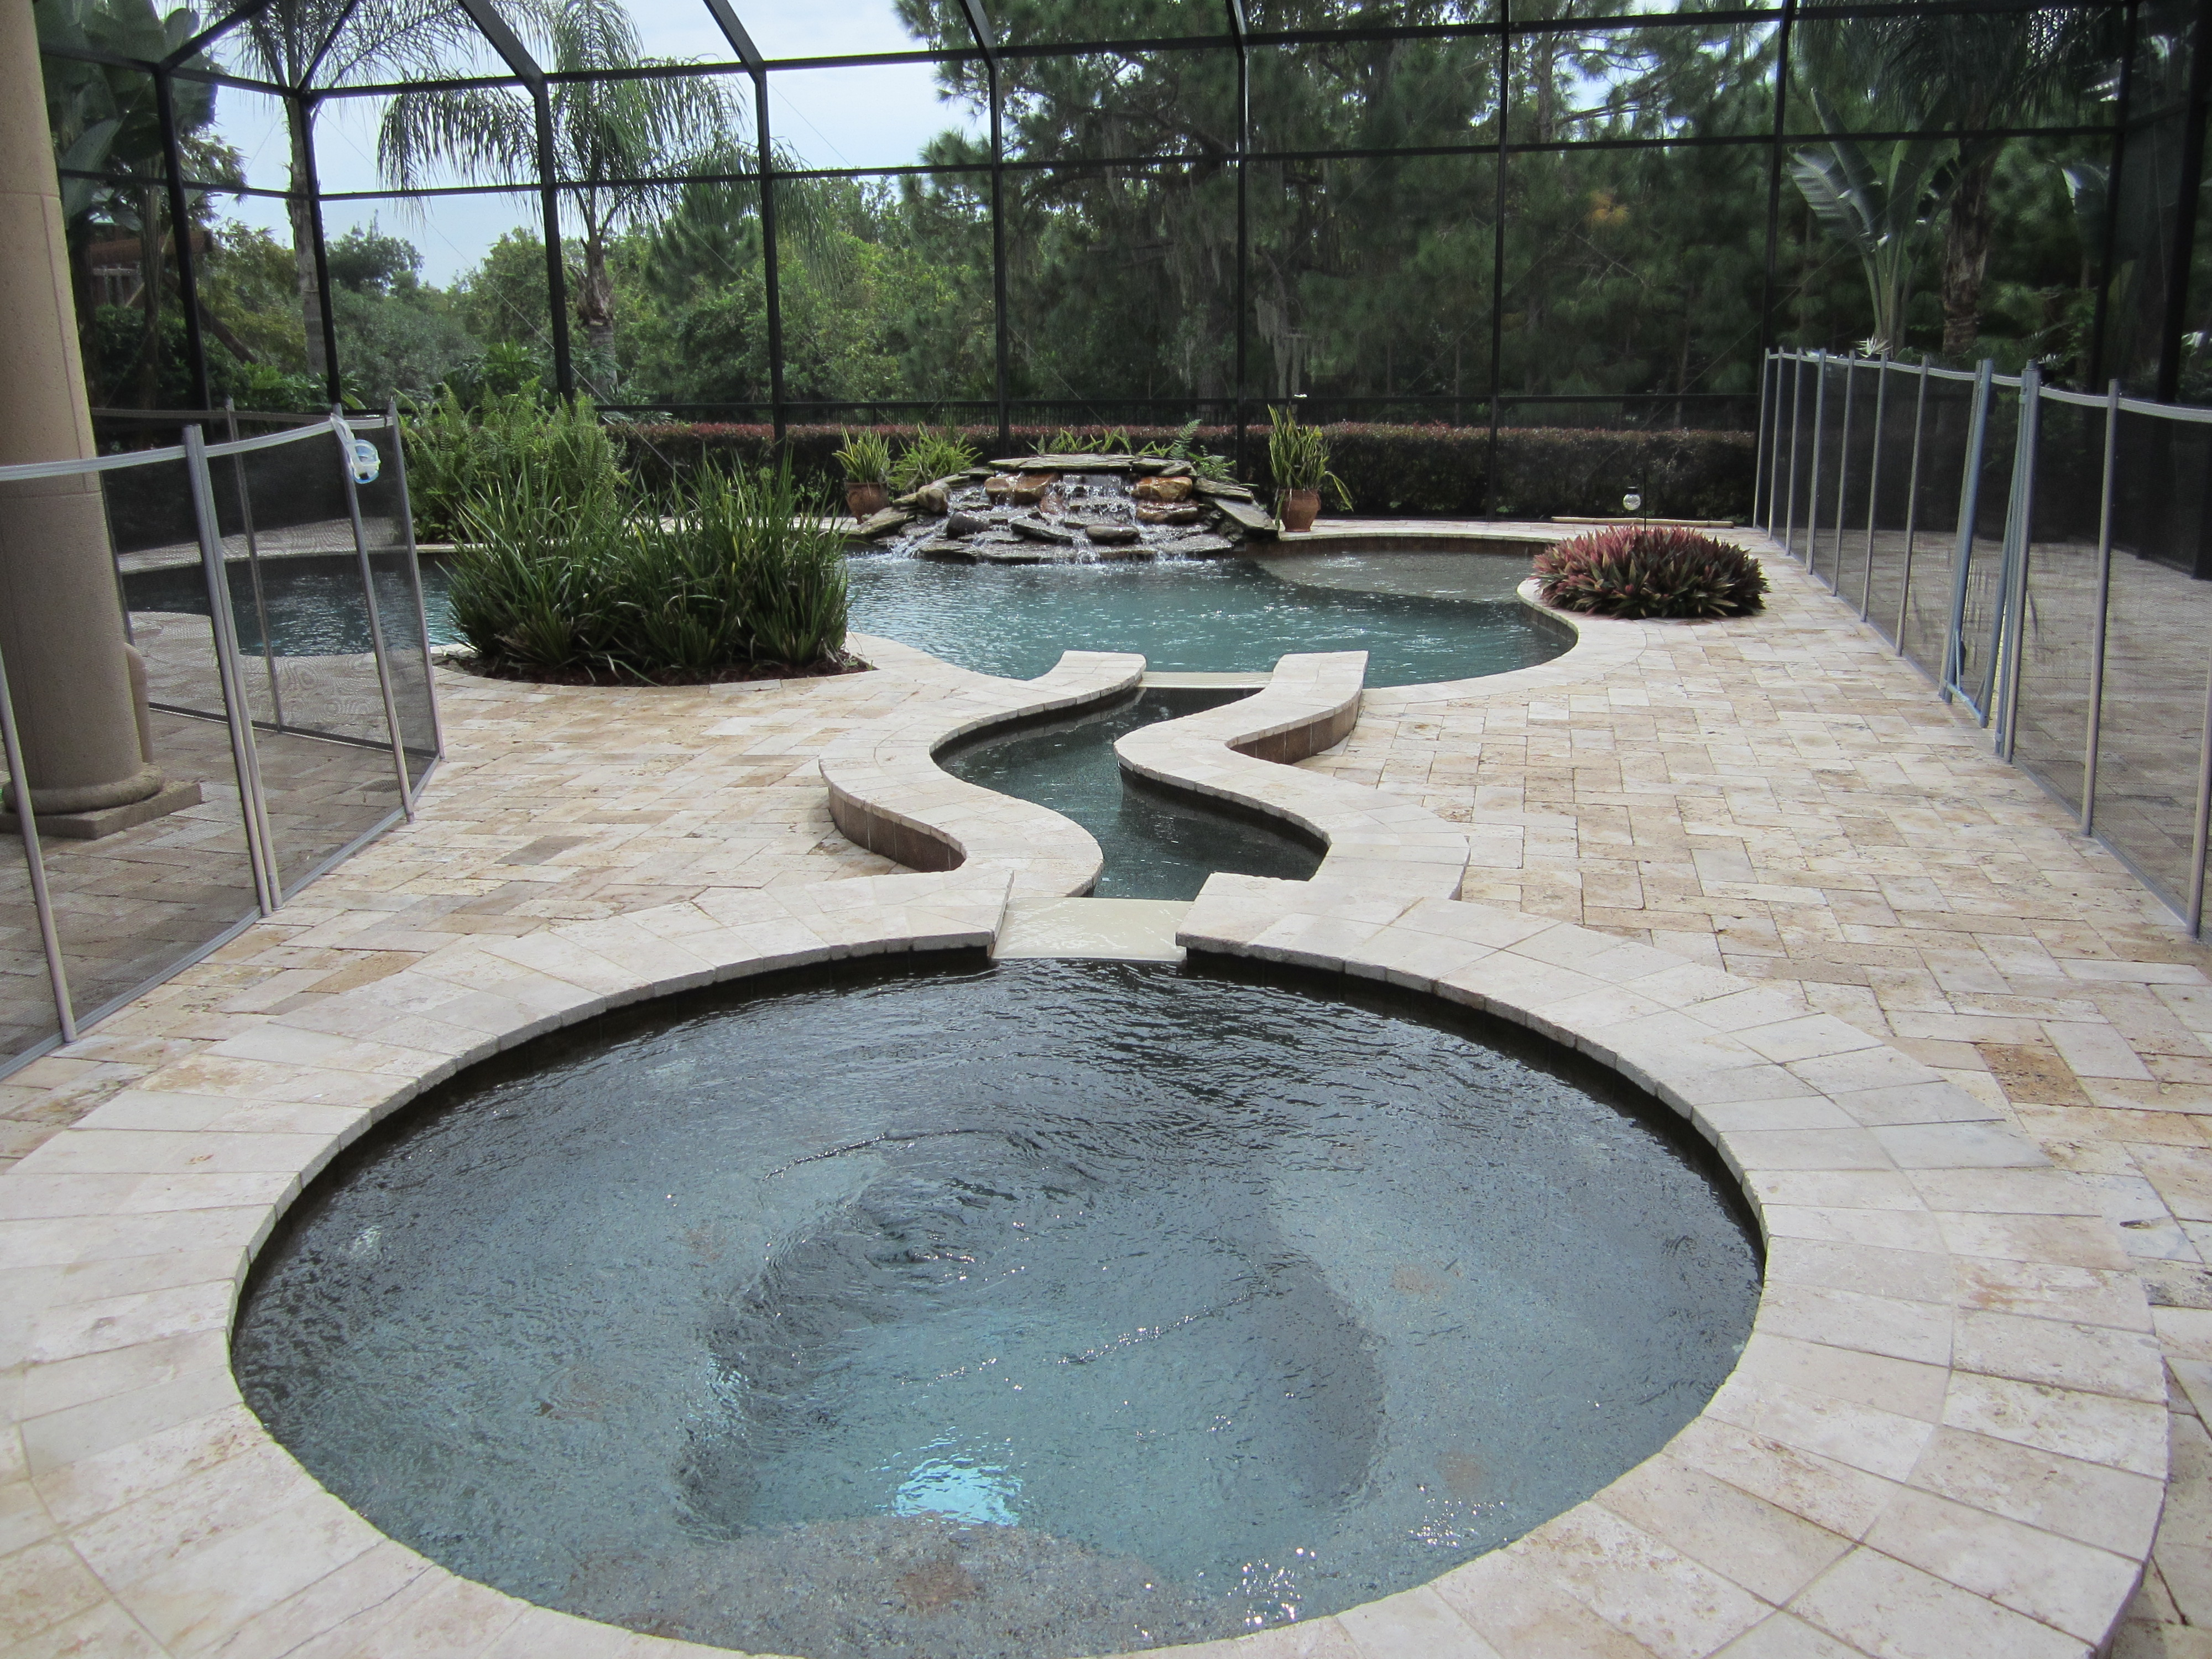 Swimming Pool Deck Cleaning : Pressure cleaning windermere fl a nice travertine pool